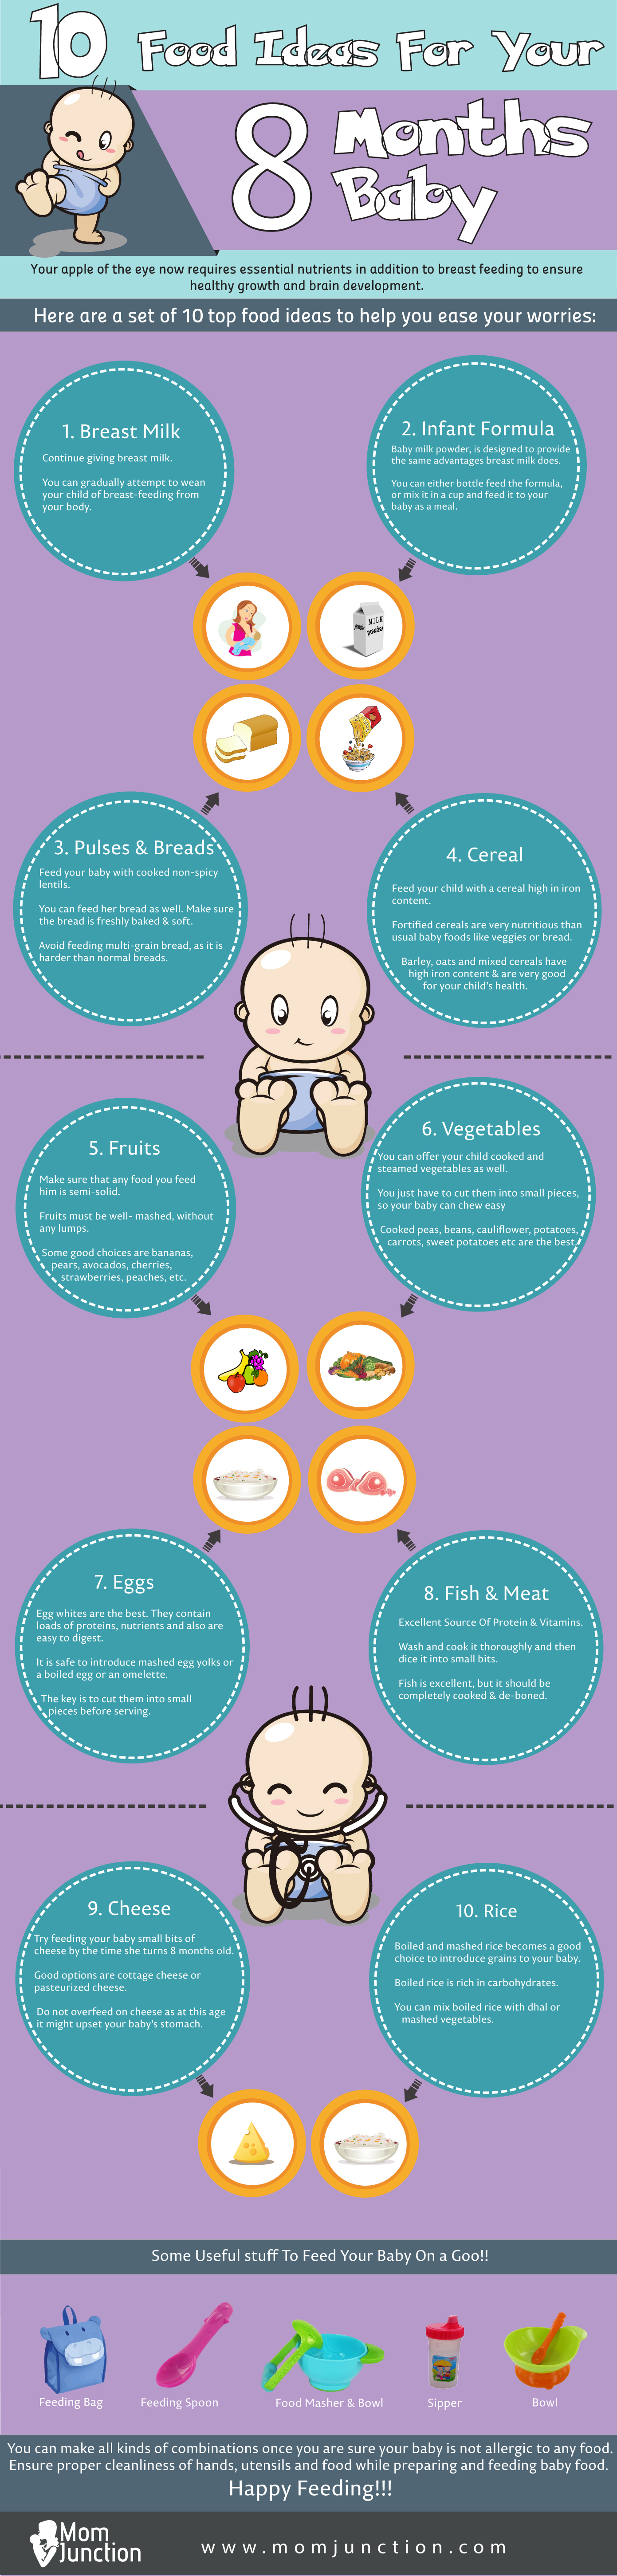 bfe3b8d20 Top 10 Food Ideas For Your 8 Months Baby